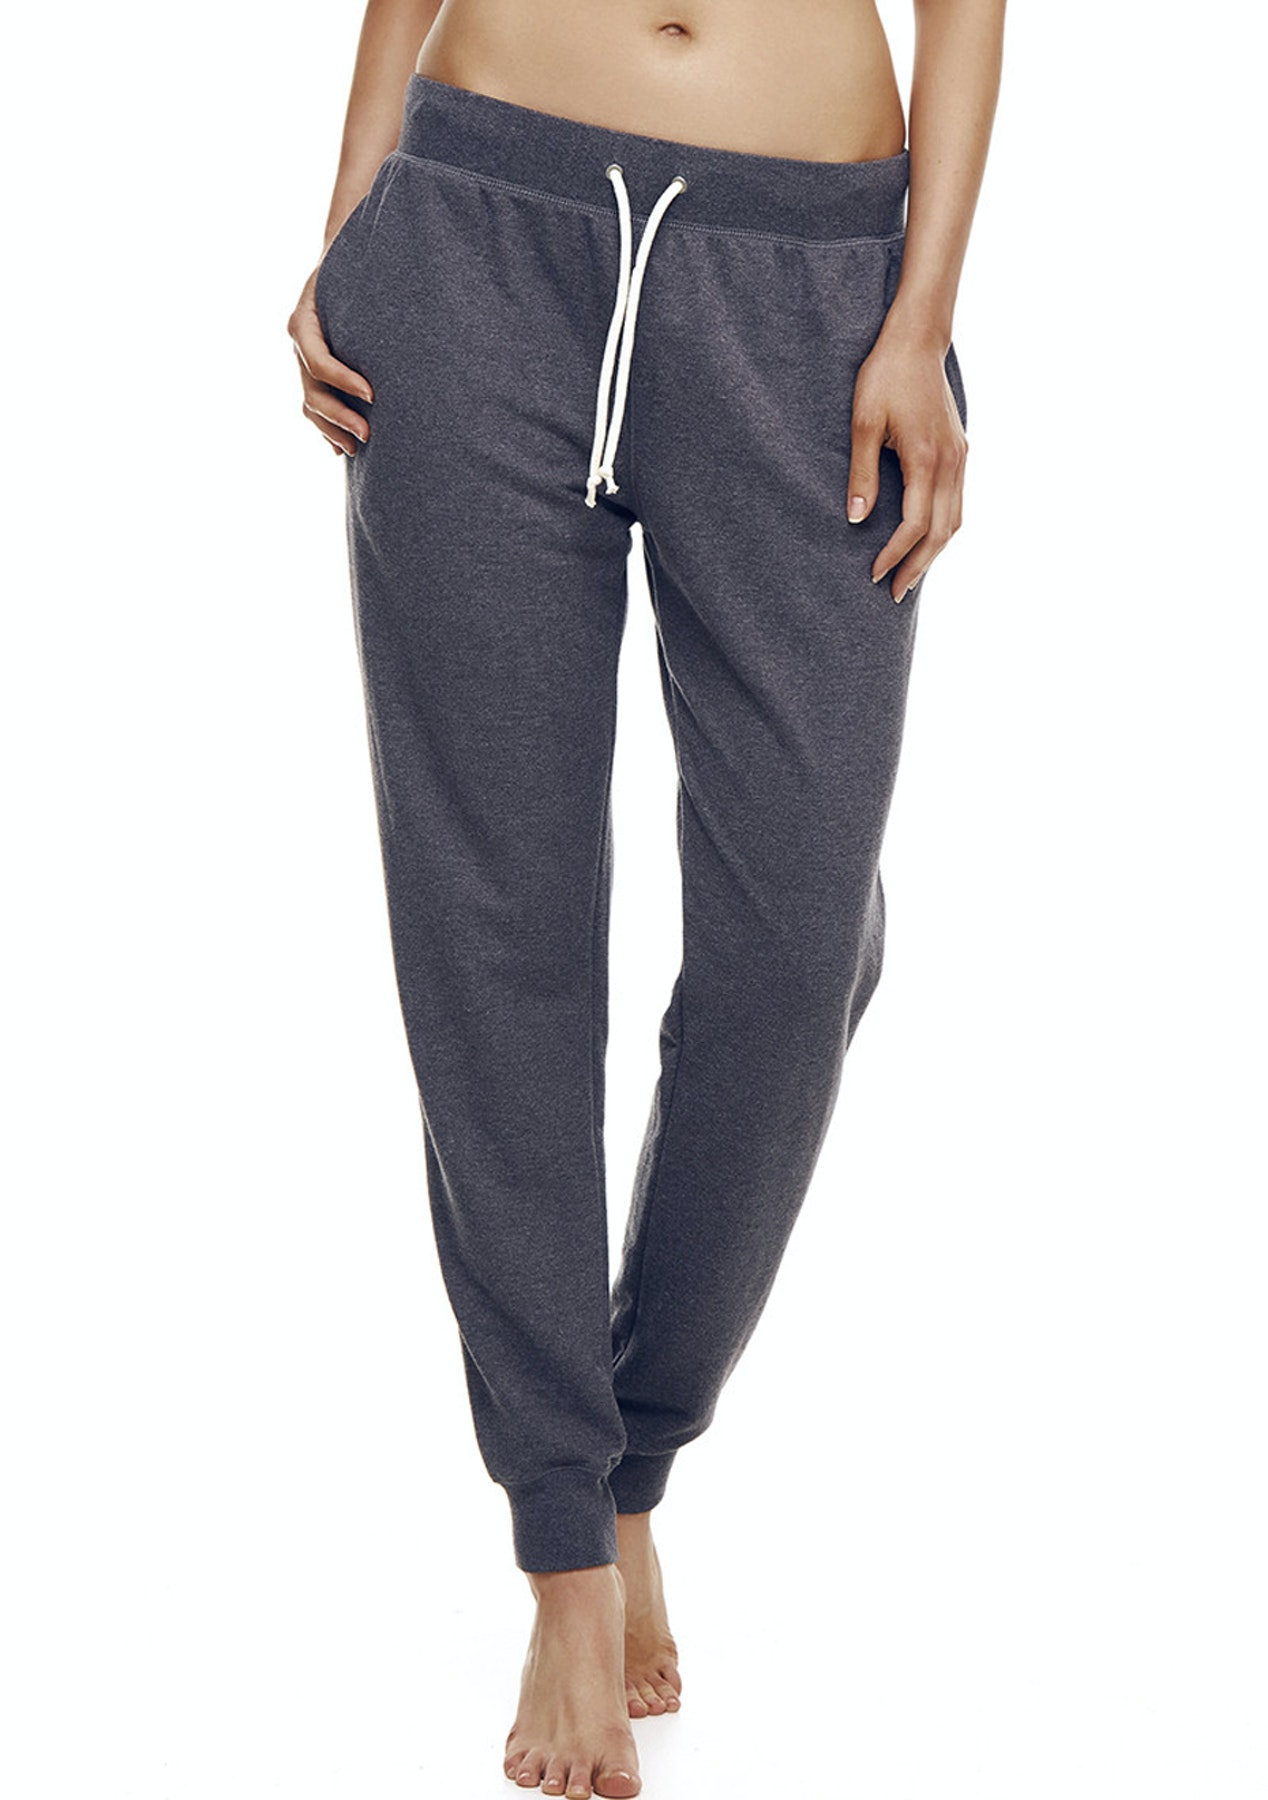 824d2c815 Champion Womens - French Terry Jogger - Granite Heather - Champion   Bonds  Activewear Under  50 - Onceit